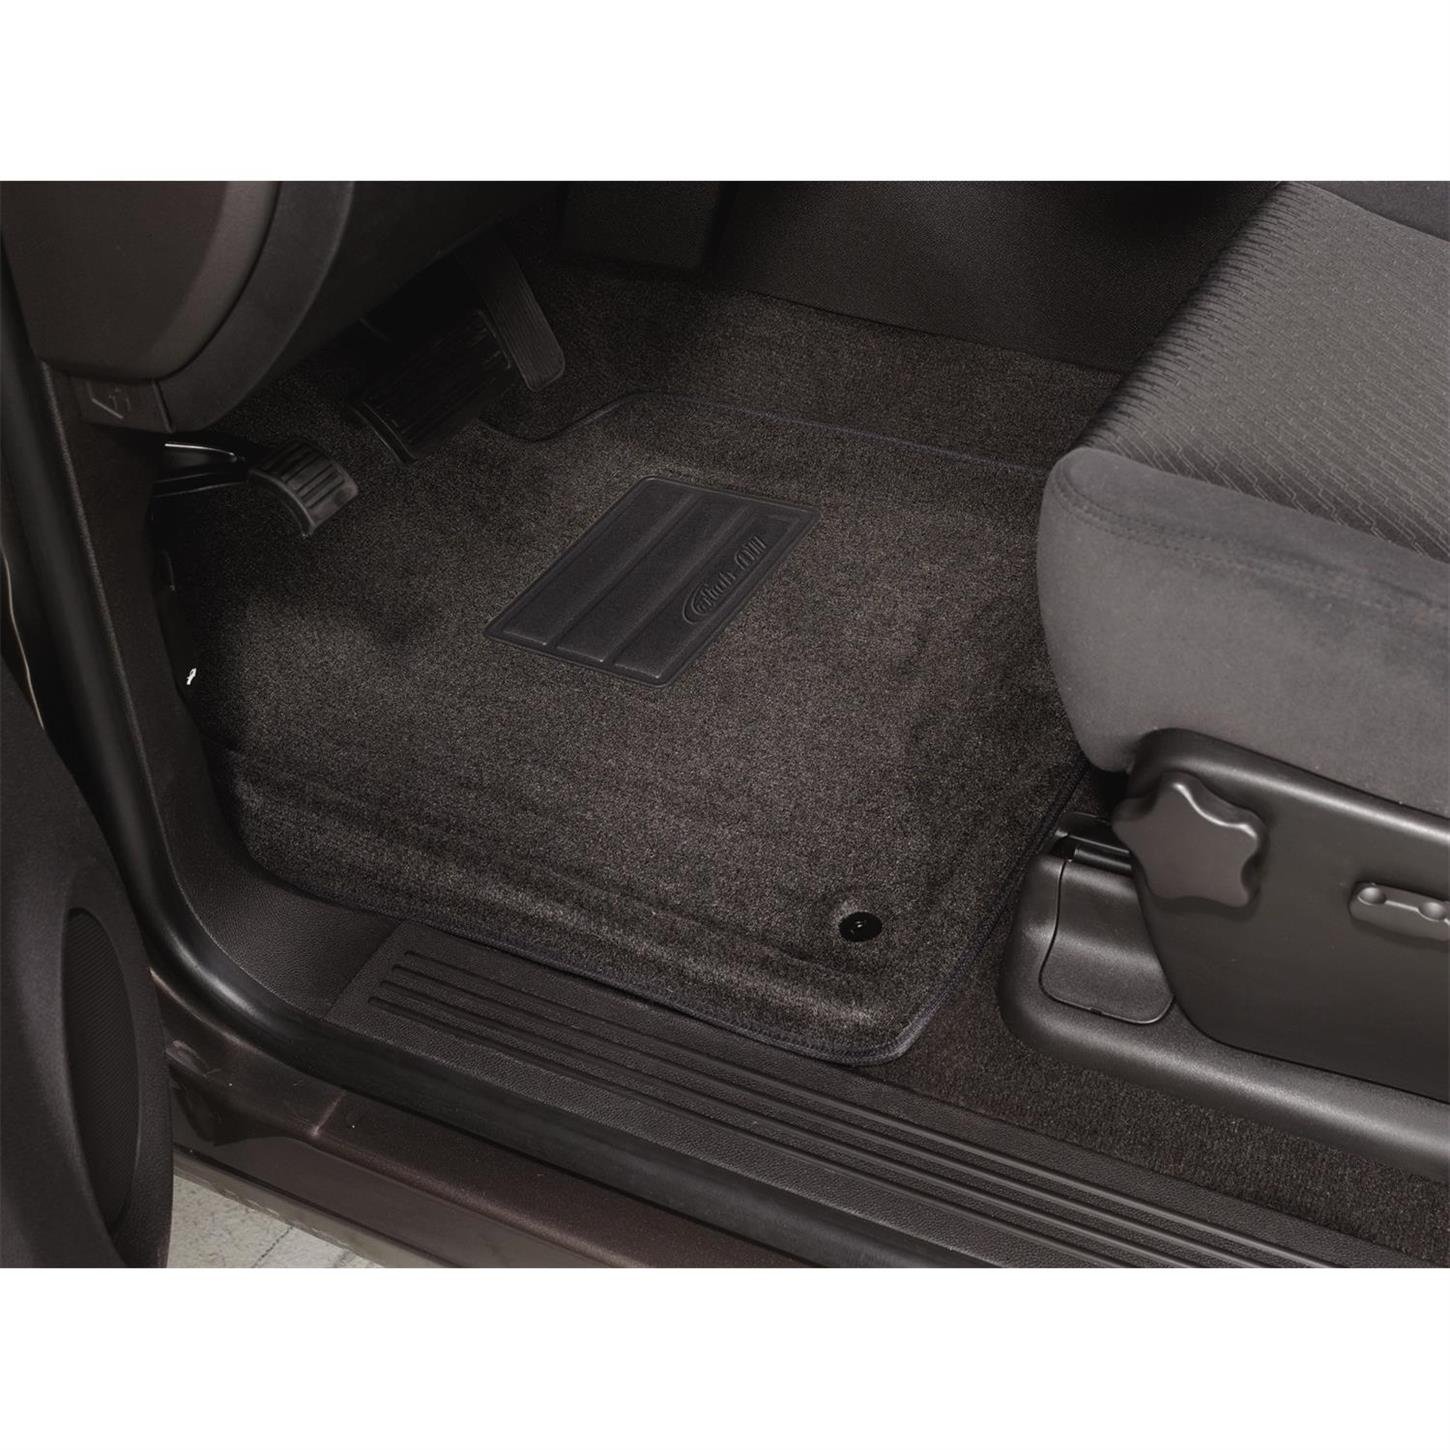 dakota p floors ram ridge rear floor all kit liner terrain cab mats for front dodge mega rugged